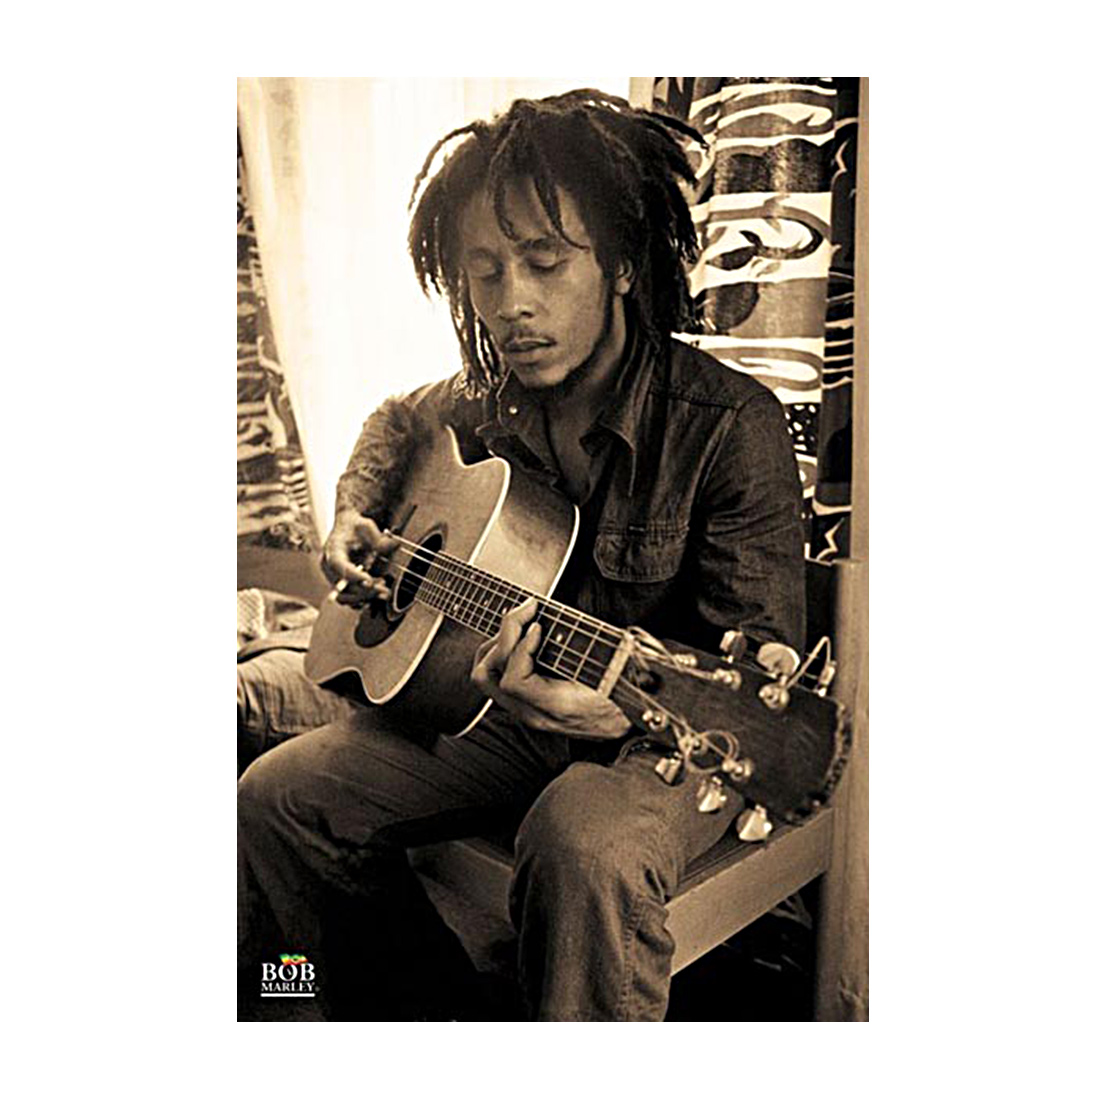 poster bob marley guitare sepia poster pas cher planete. Black Bedroom Furniture Sets. Home Design Ideas